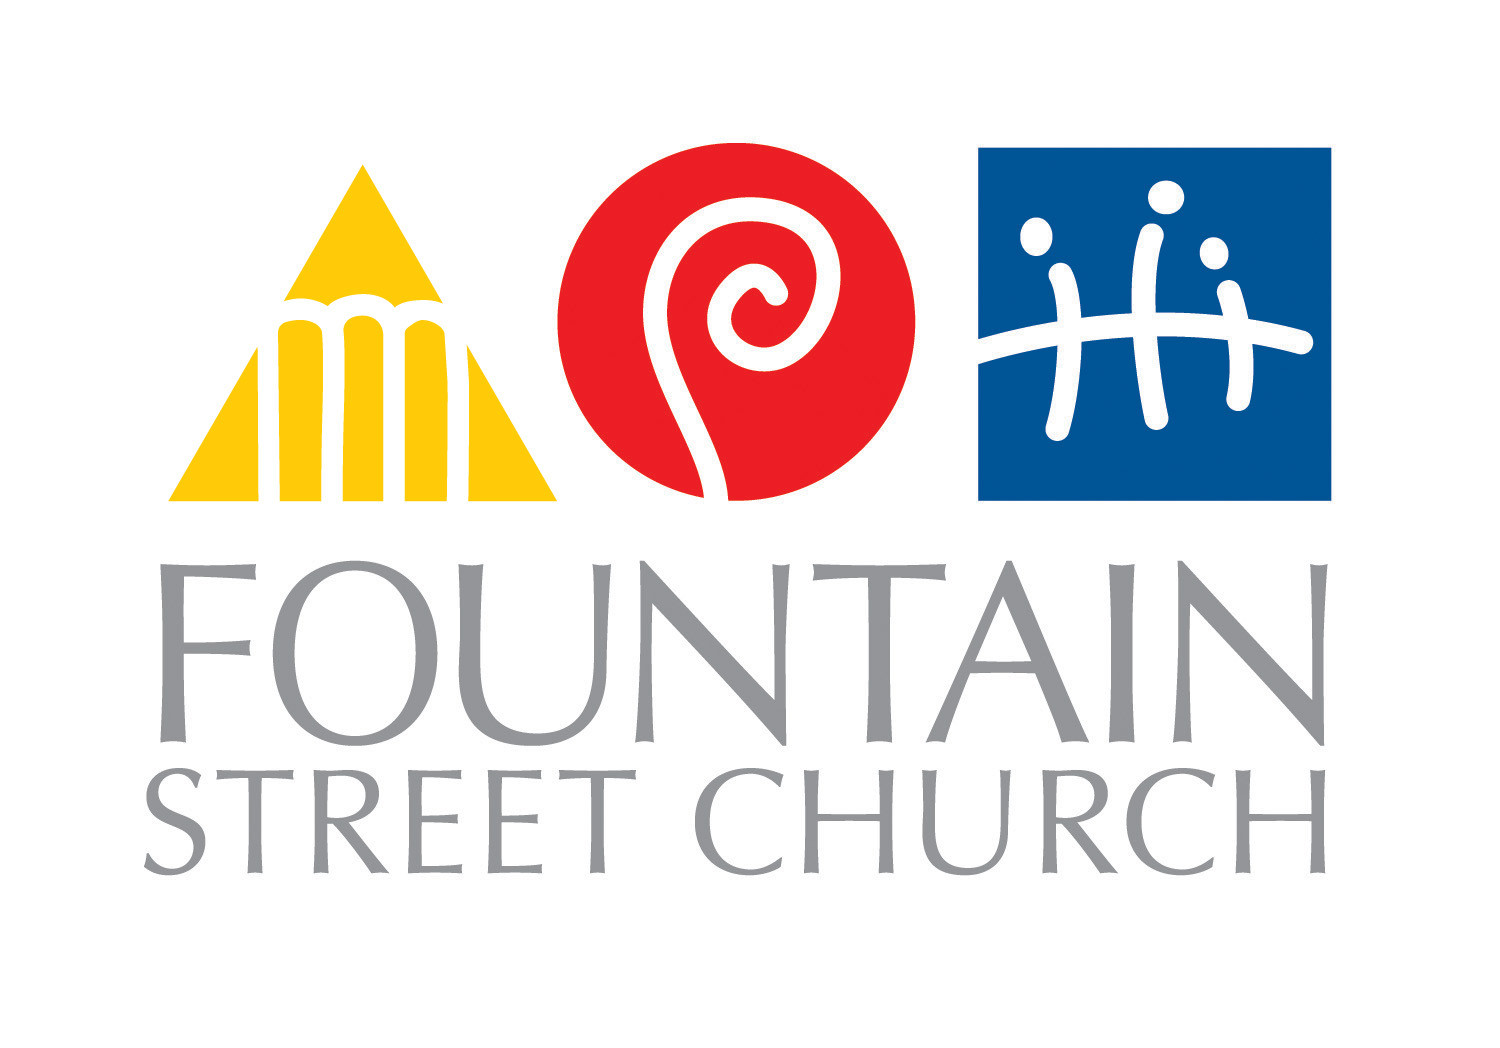 About Fountainstchurch